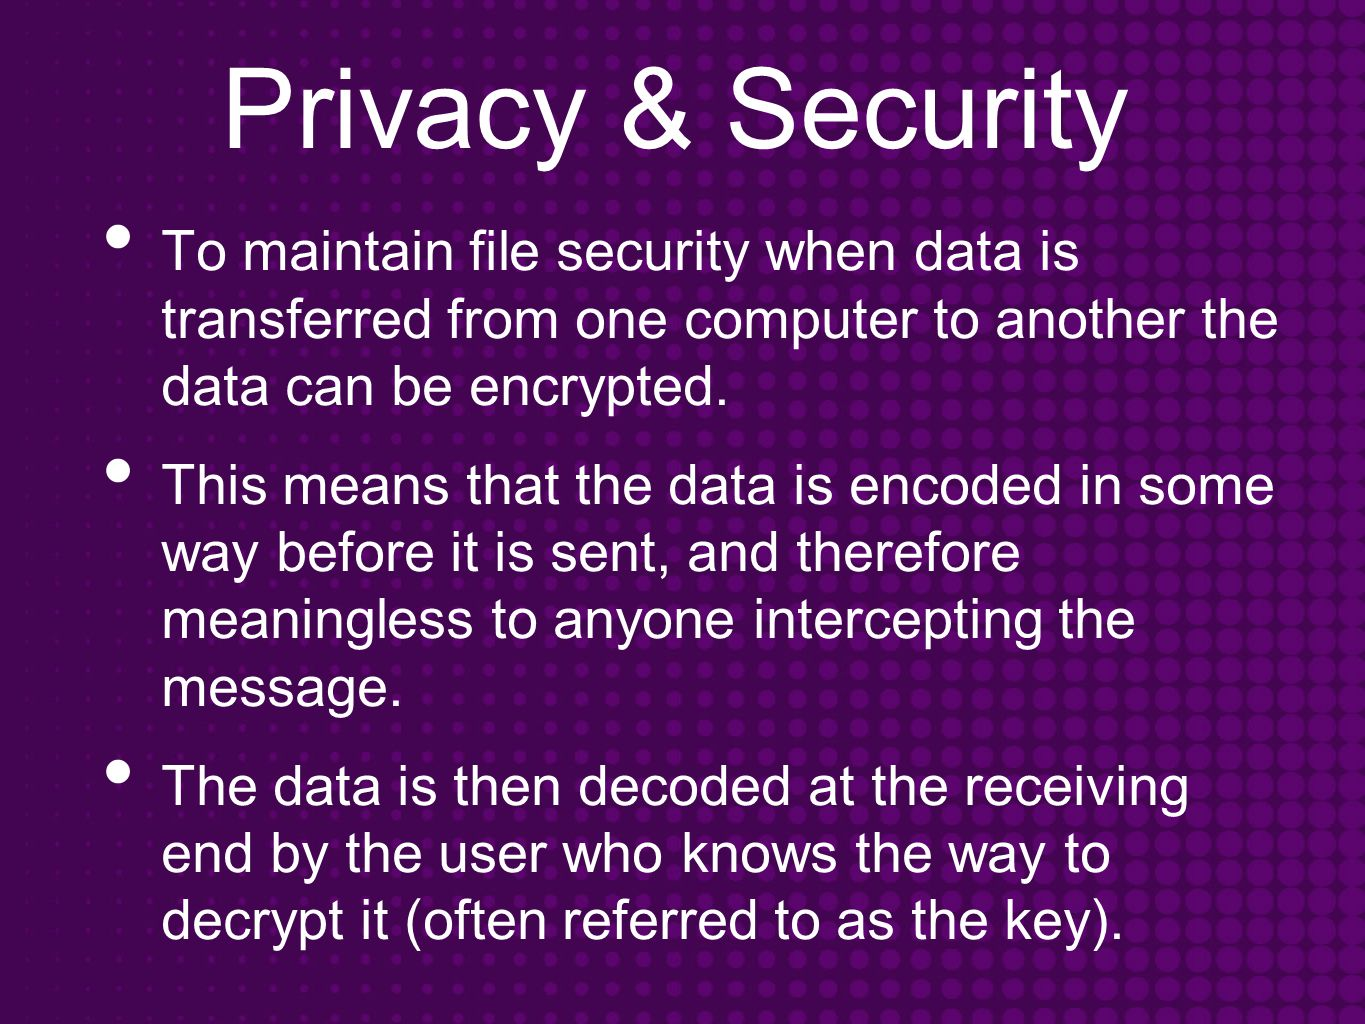 Privacy & Security To maintain file security when data is transferred from one computer to another the data can be encrypted.